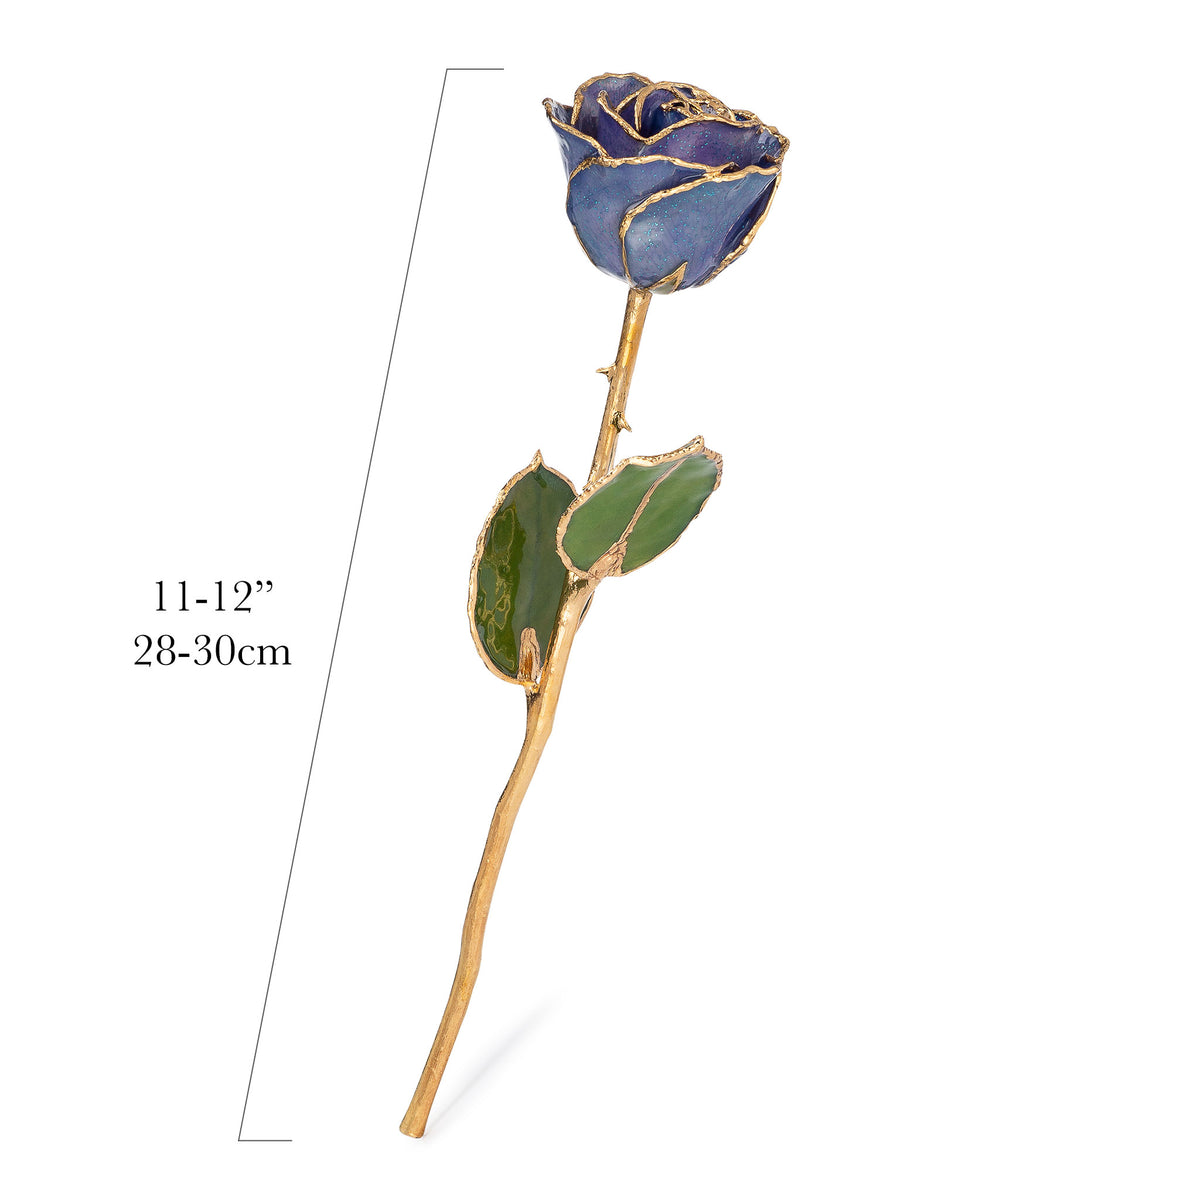 24K Gold Trimmed Forever Rose with Tanzanite (Purple, Lavender, and Blue color blend) Petals with Sapphire Blue Suspended Sparkles. View of Stem, Leaves, and Rose Petals and Showing Detail of Gold Trim with measurements